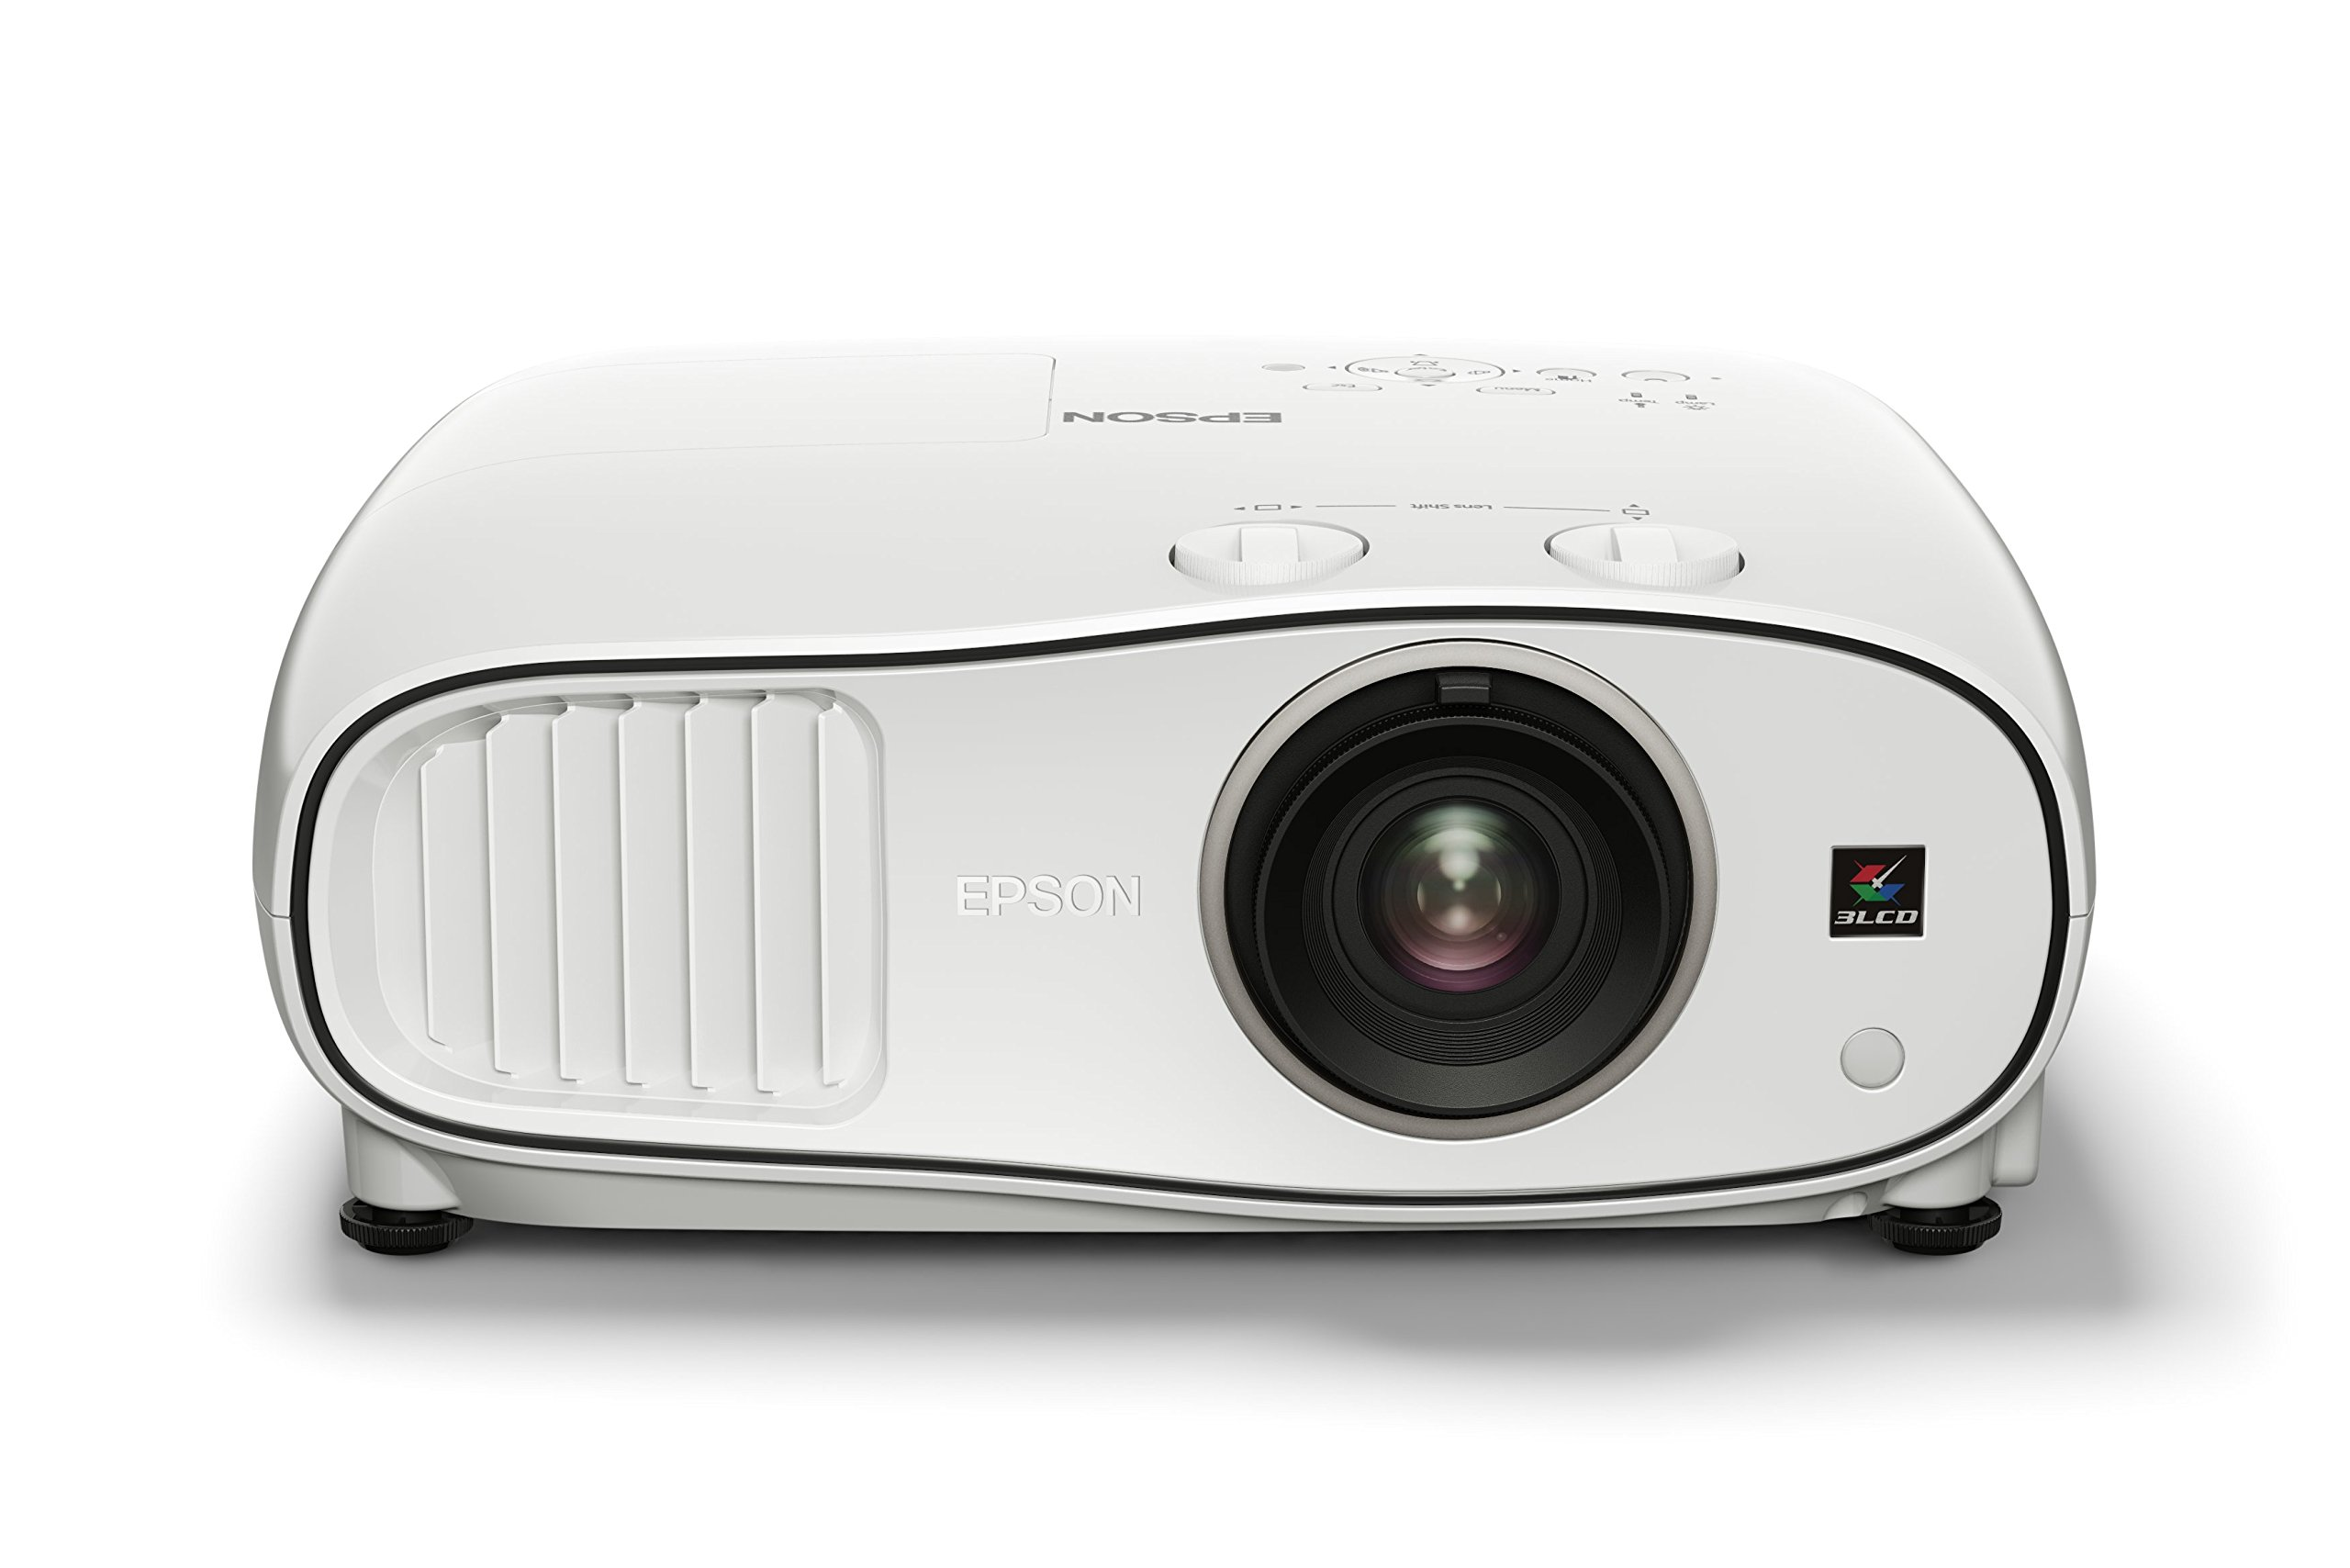 71t2GjPtc4L - Epson EH-TW6700W 3LCD, Full HD Super Resolution, 3000 Lumens, 300 Inch Display, Wi-Fi, Wide Lens Shift Range, Home Cinema 3D Projector - White